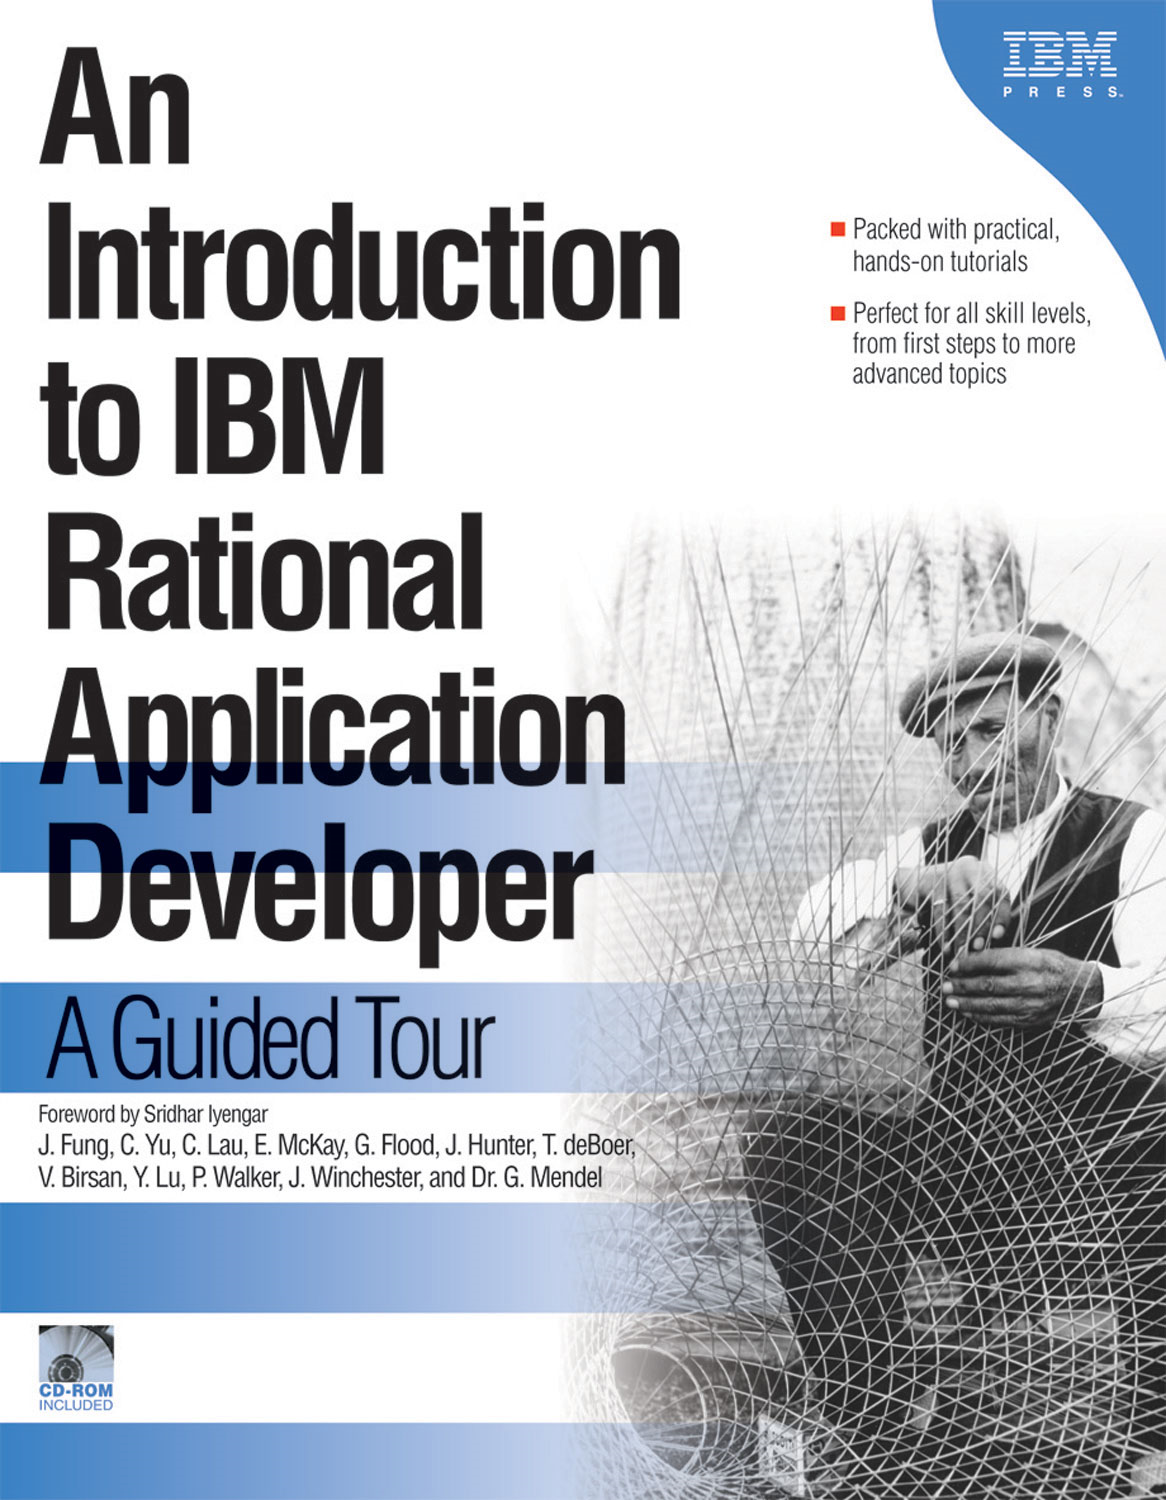 An Introduction to IBM Rational Application Developer: A Guided Tour